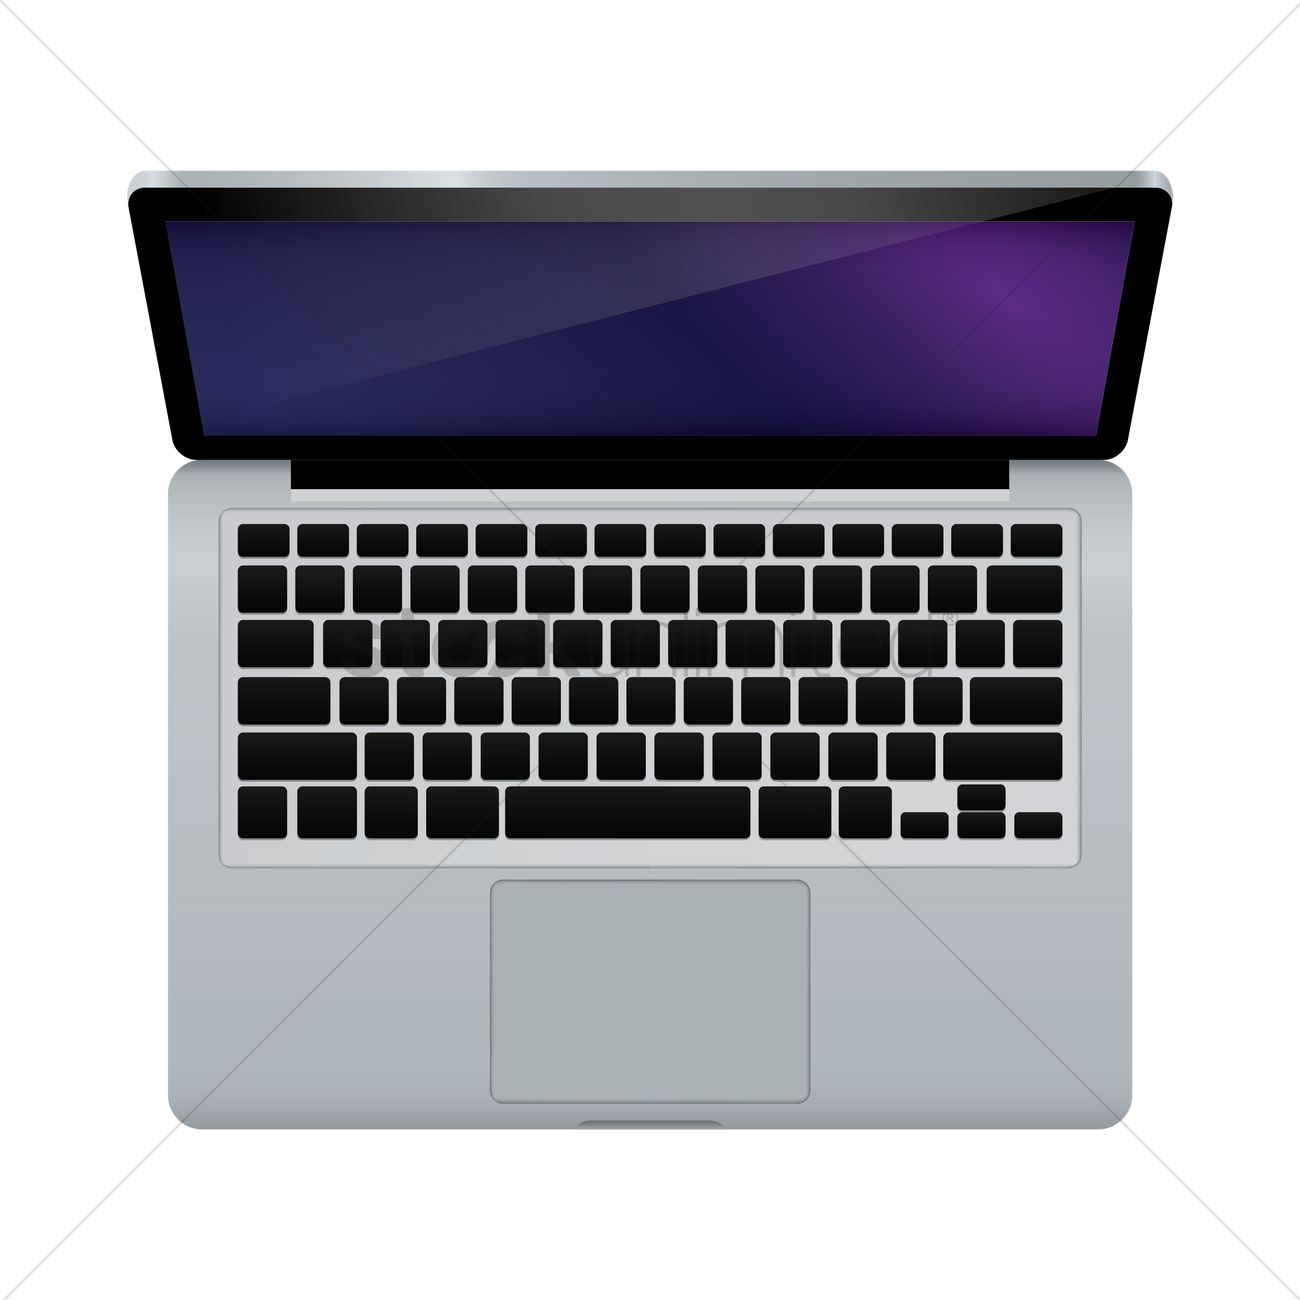 1300x1300 Free Laptop Vector Image